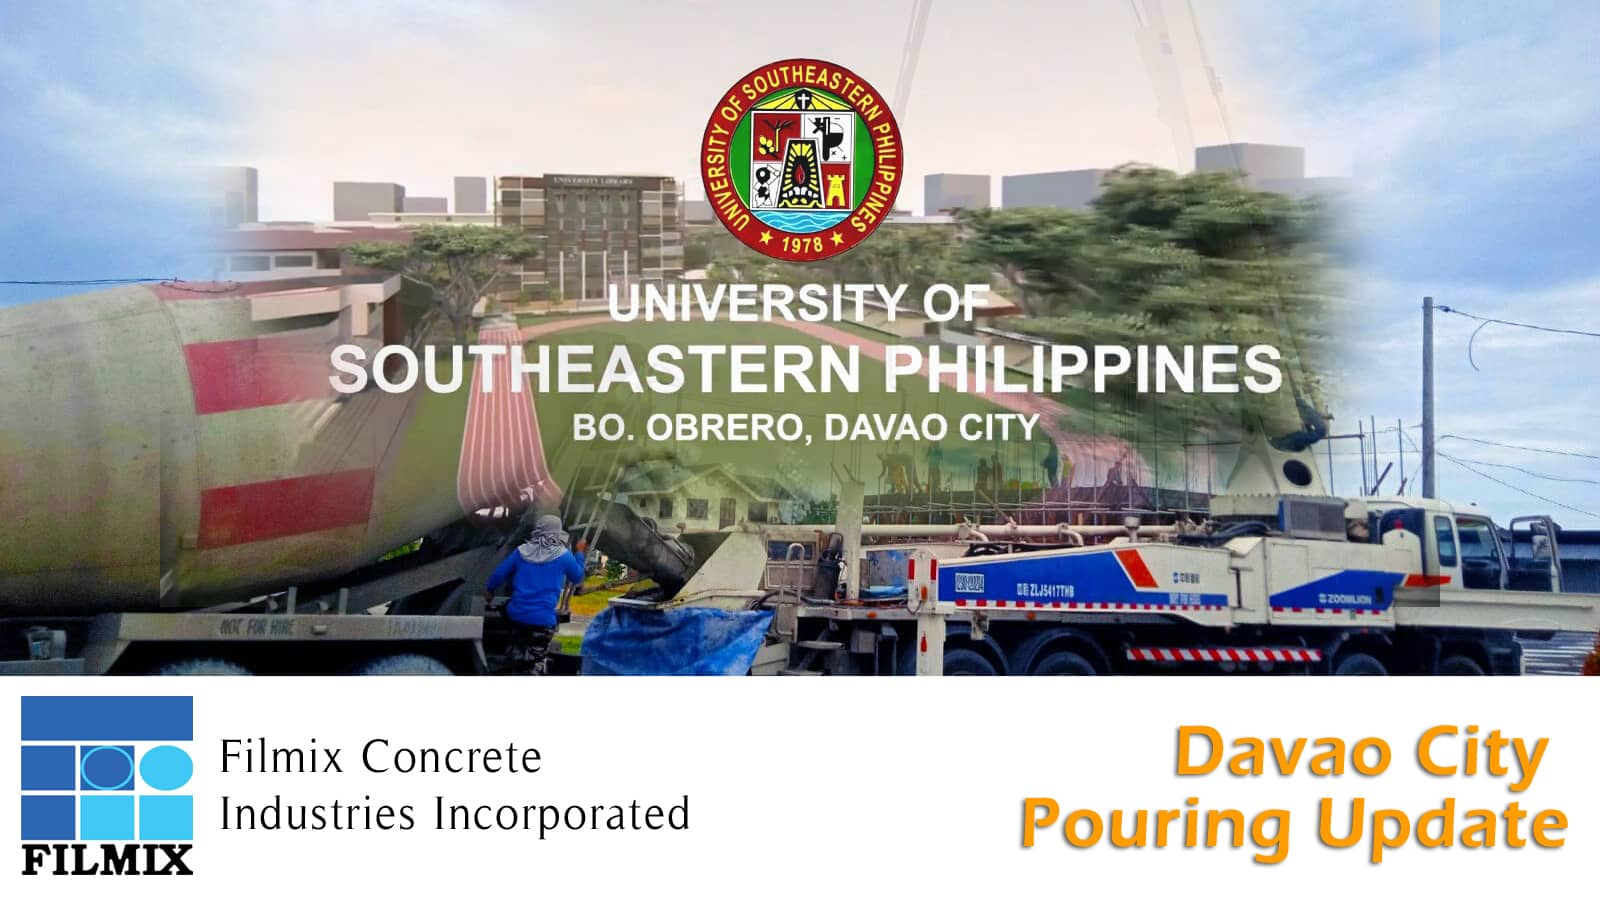 Filmix ready mix concrete Davao pouring update